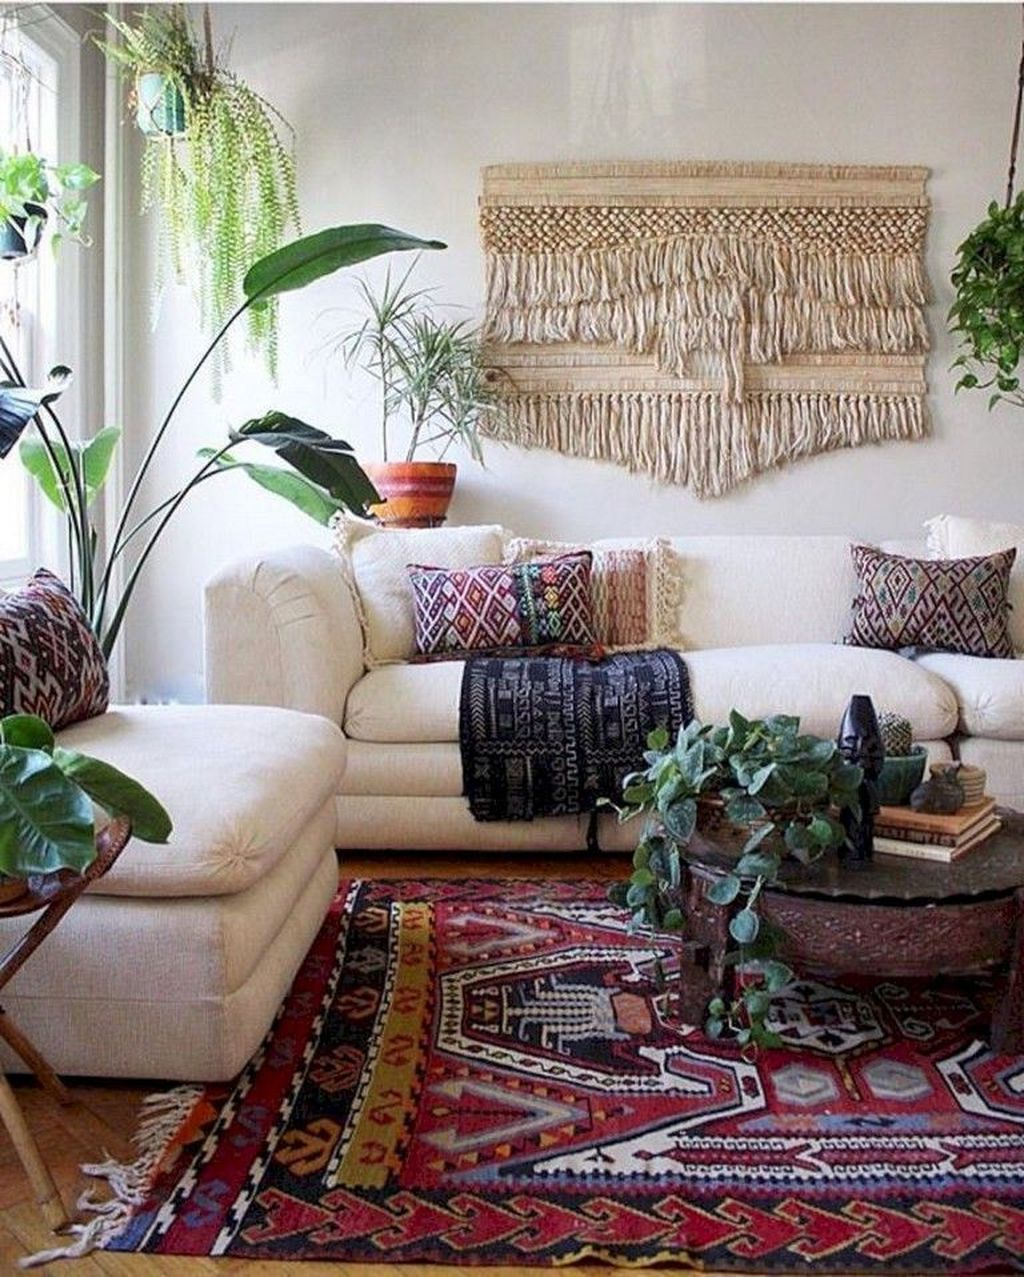 The Best Rustic Bohemian Living Room Decor Ideas 31